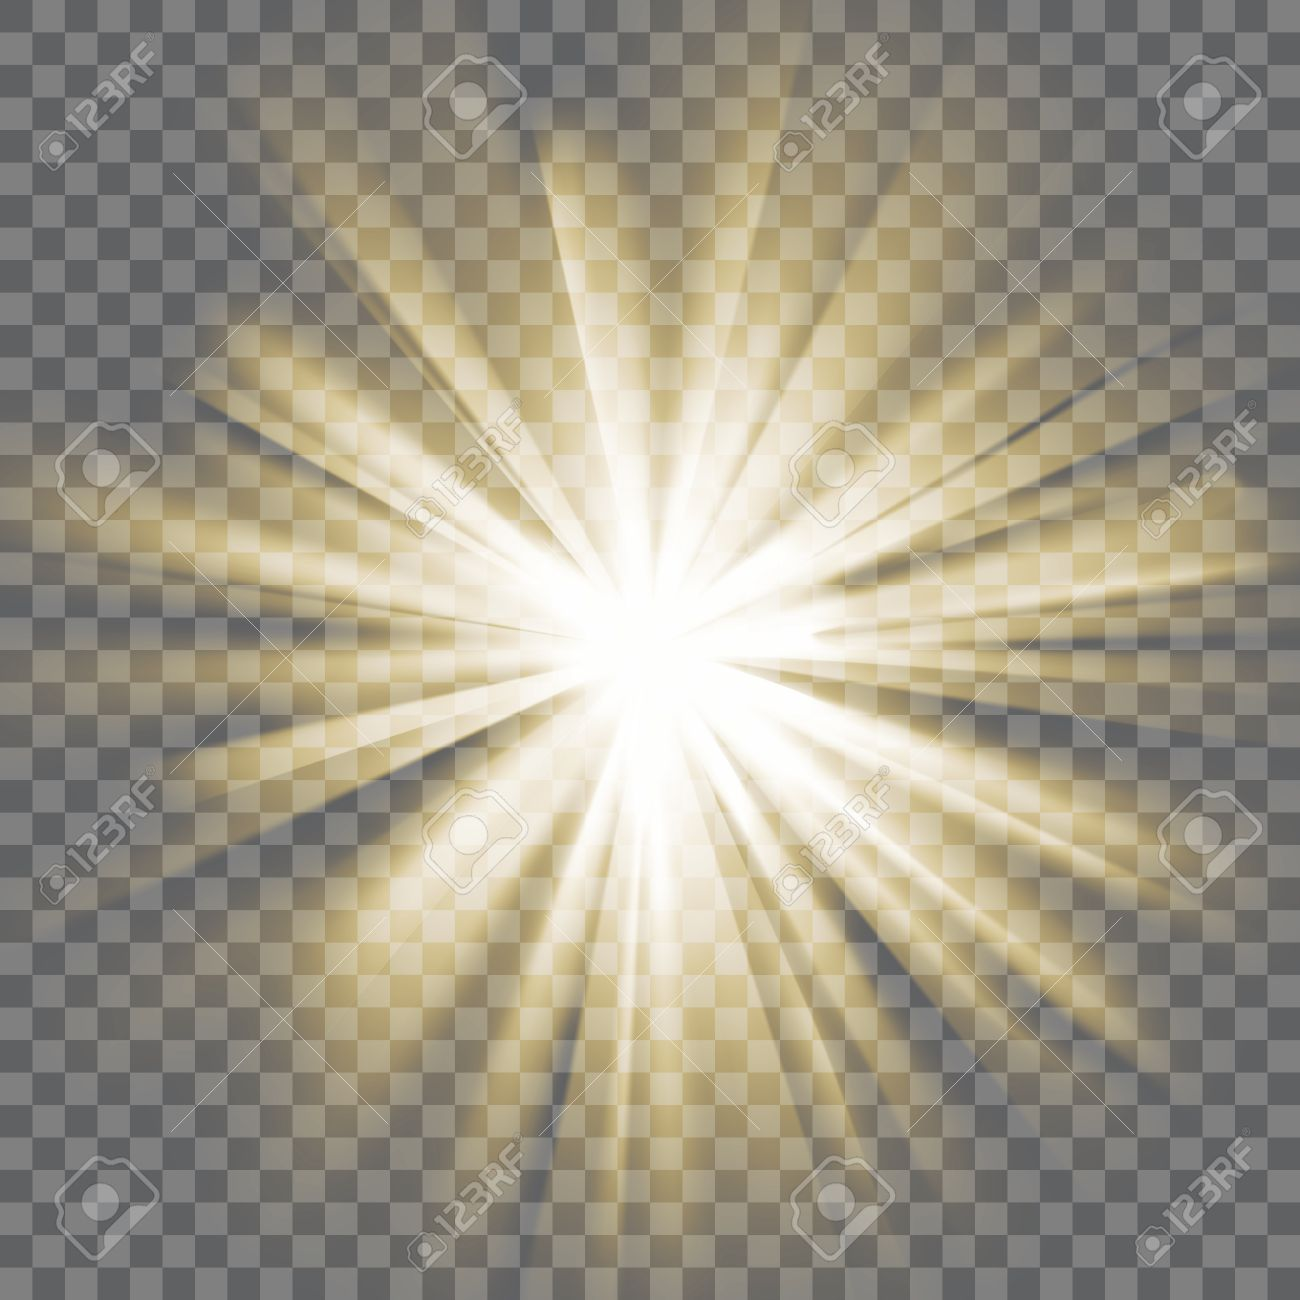 Yellow Glowing Light Sun Rays Bursting Explosion Transparent Background Of